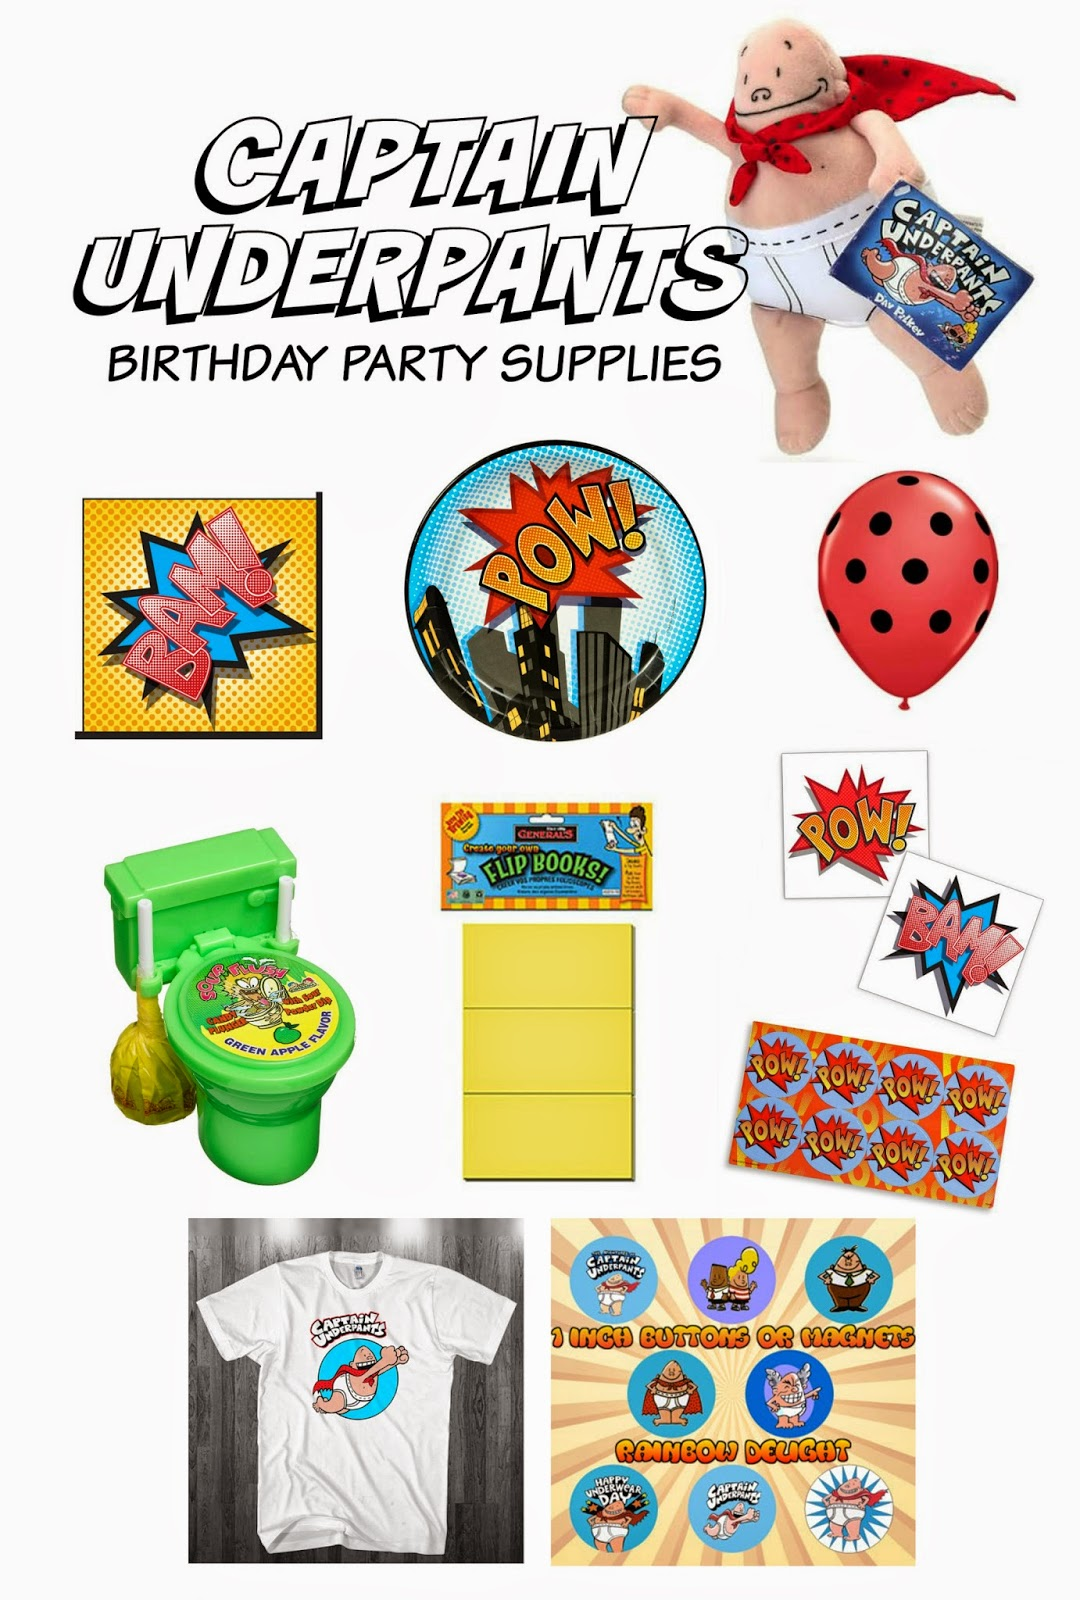 Captain Underpants Birthday Party Supplies